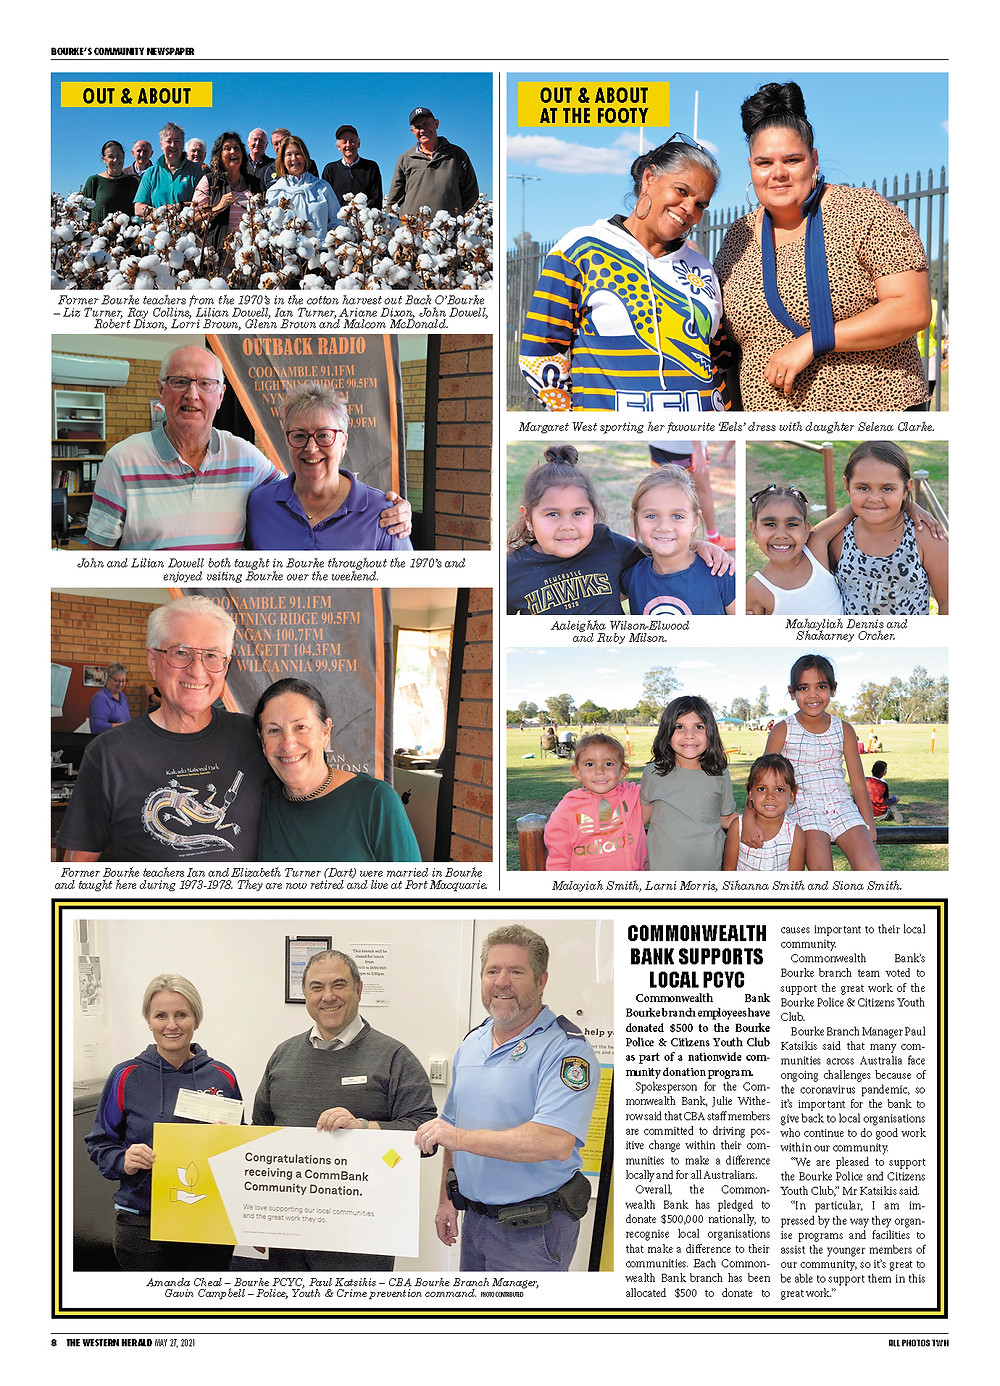 See more Out & About photos in the printed edition of The Western Herald. To subscribe call (02) 6872 2333 today and receive The Western Herald in your letterbox next week!